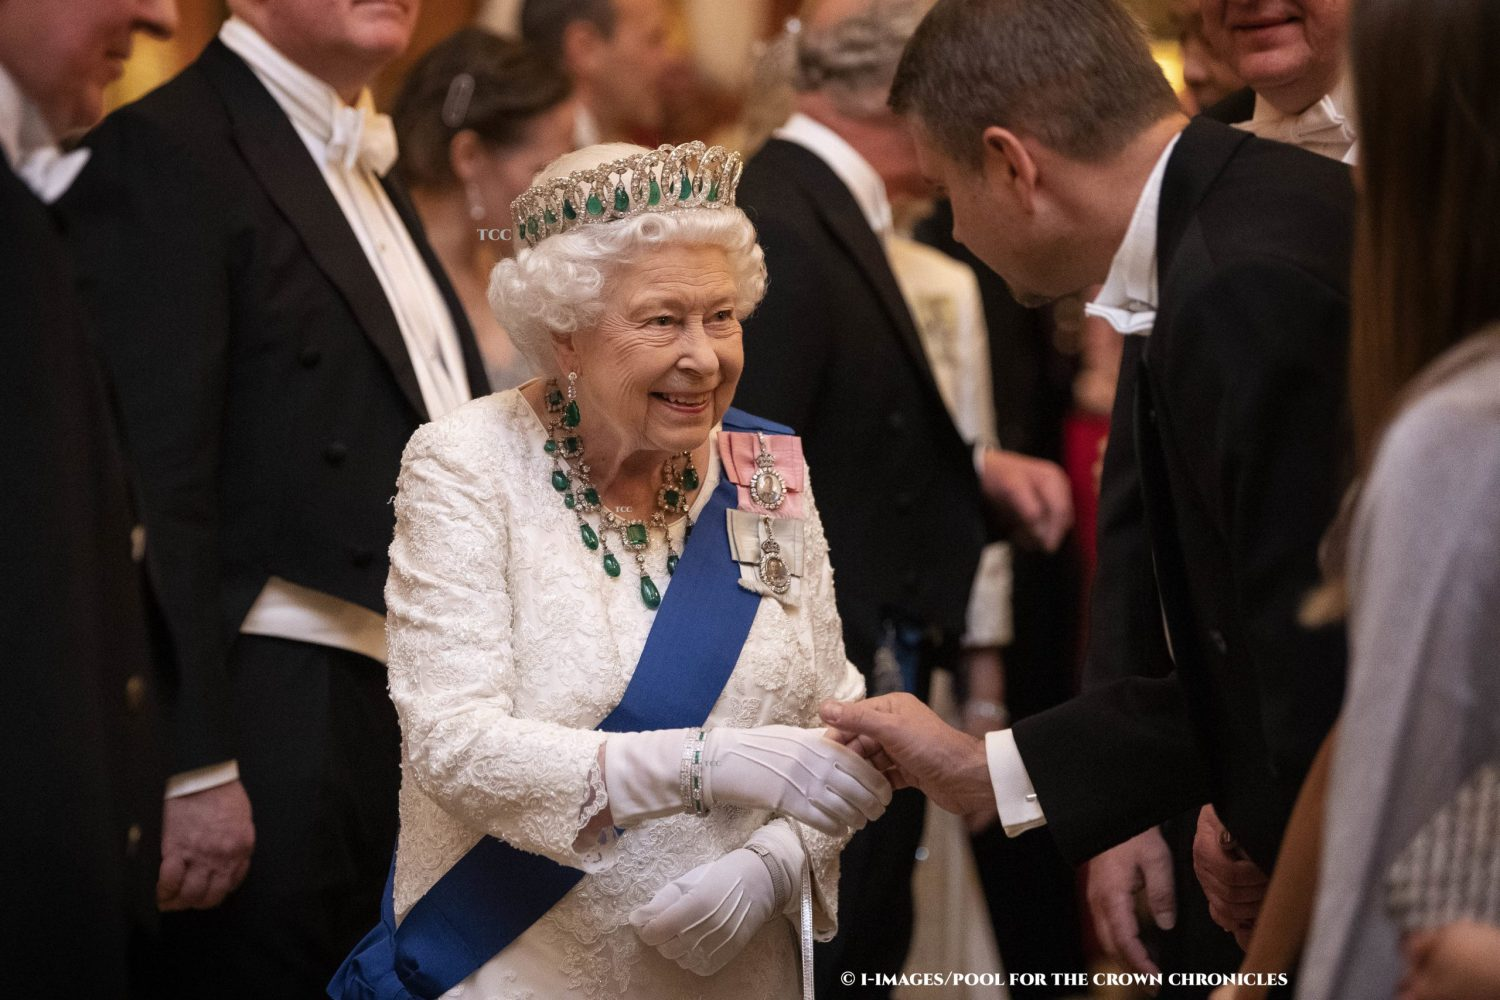 The Queen has recorded a video message to reassure the public. Picture by i-Images / Pool